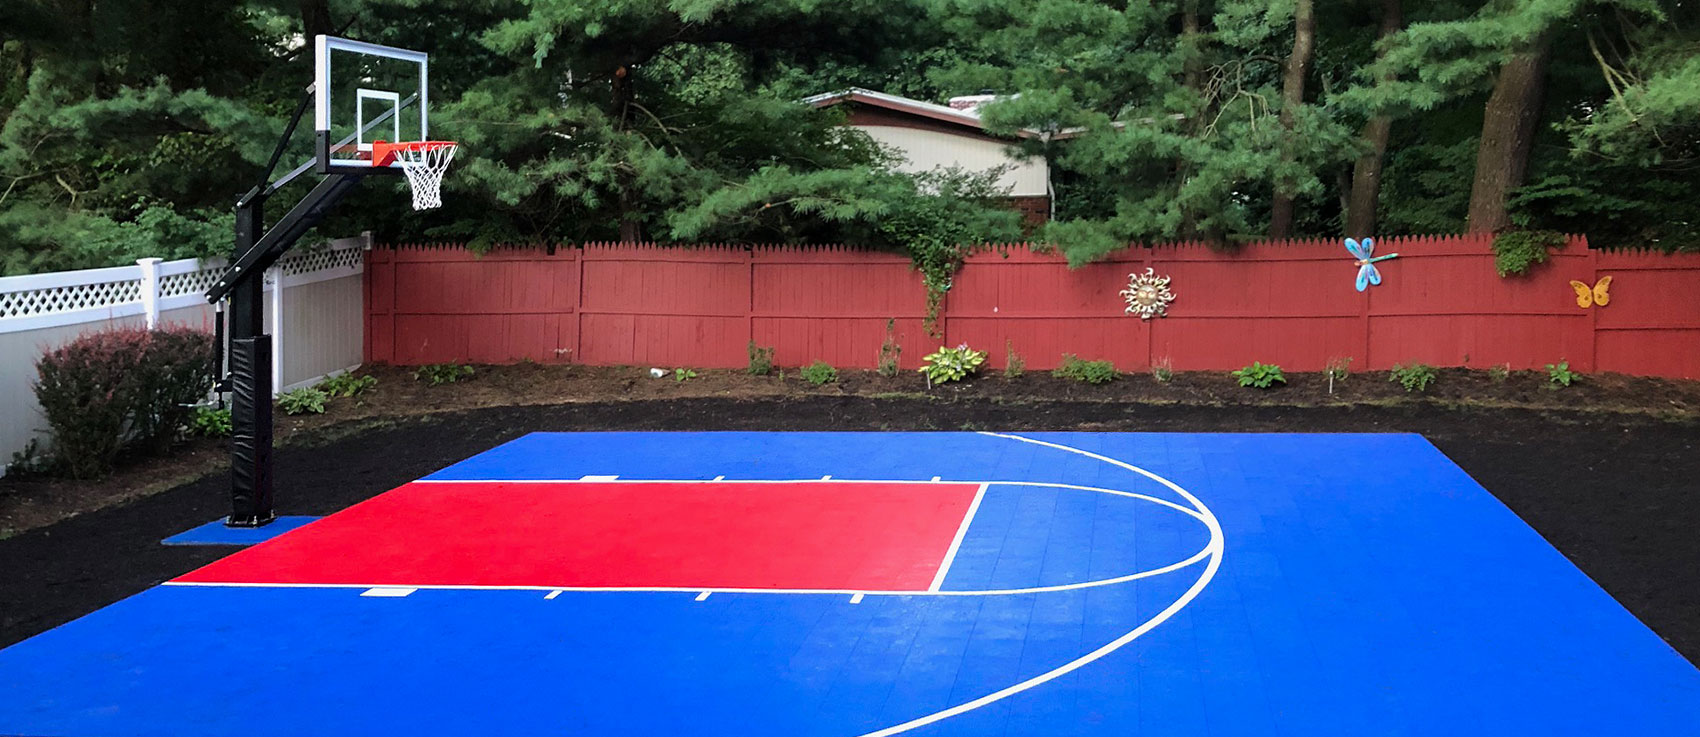 DIY Backyard Courts